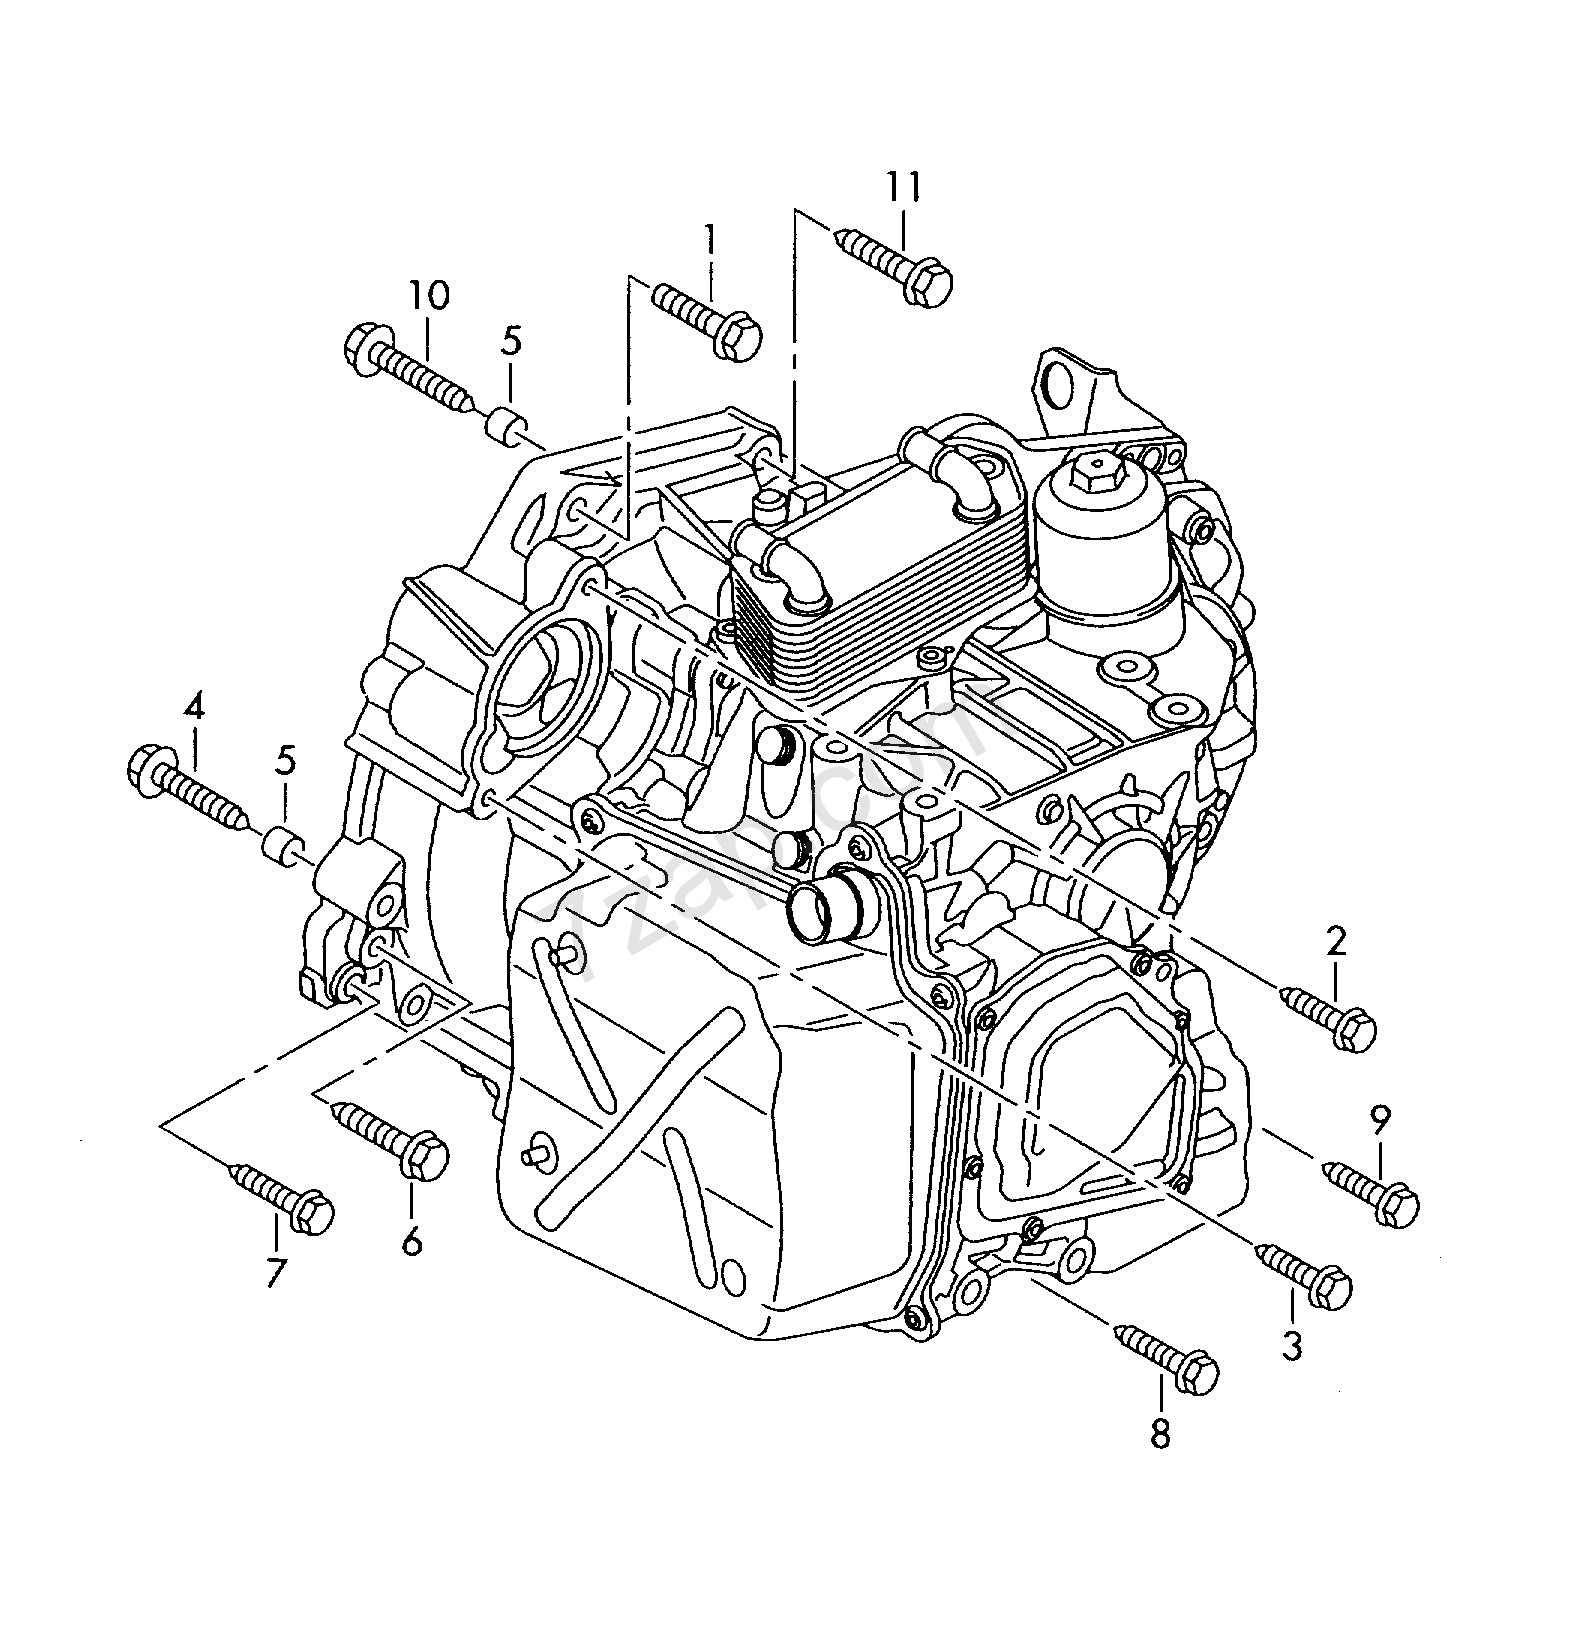 mounting parts for engine and transmission; 6-spe